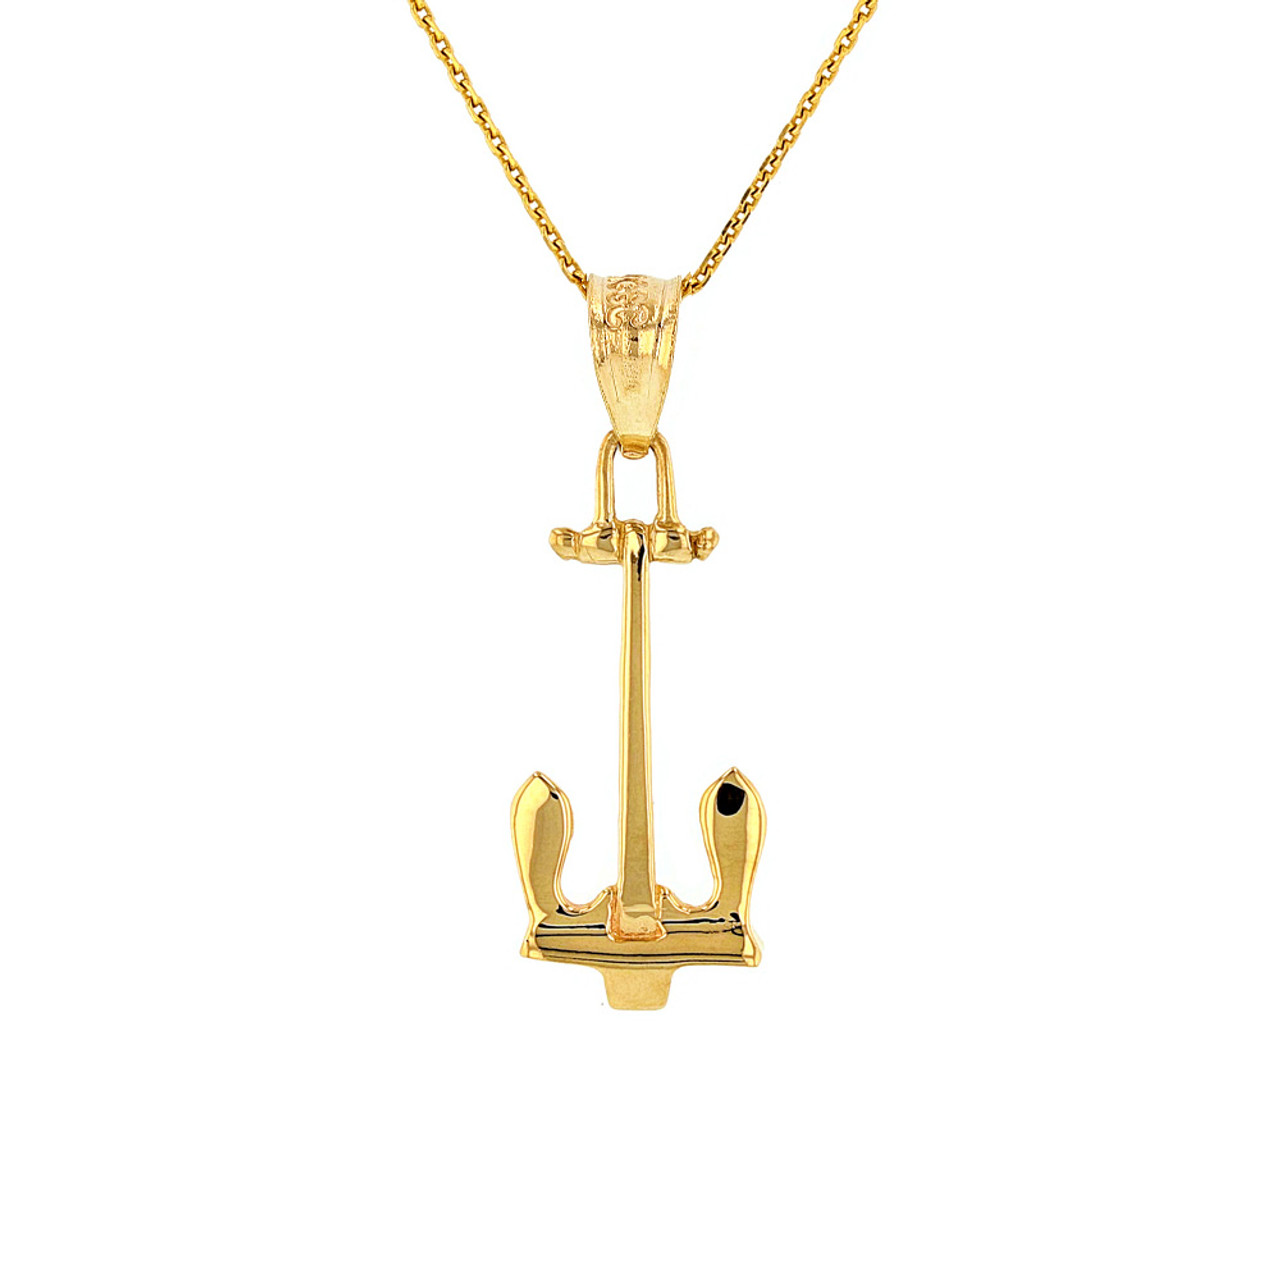 Solid yellow gold us navy stockless anchor pendant necklace mozeypictures Images